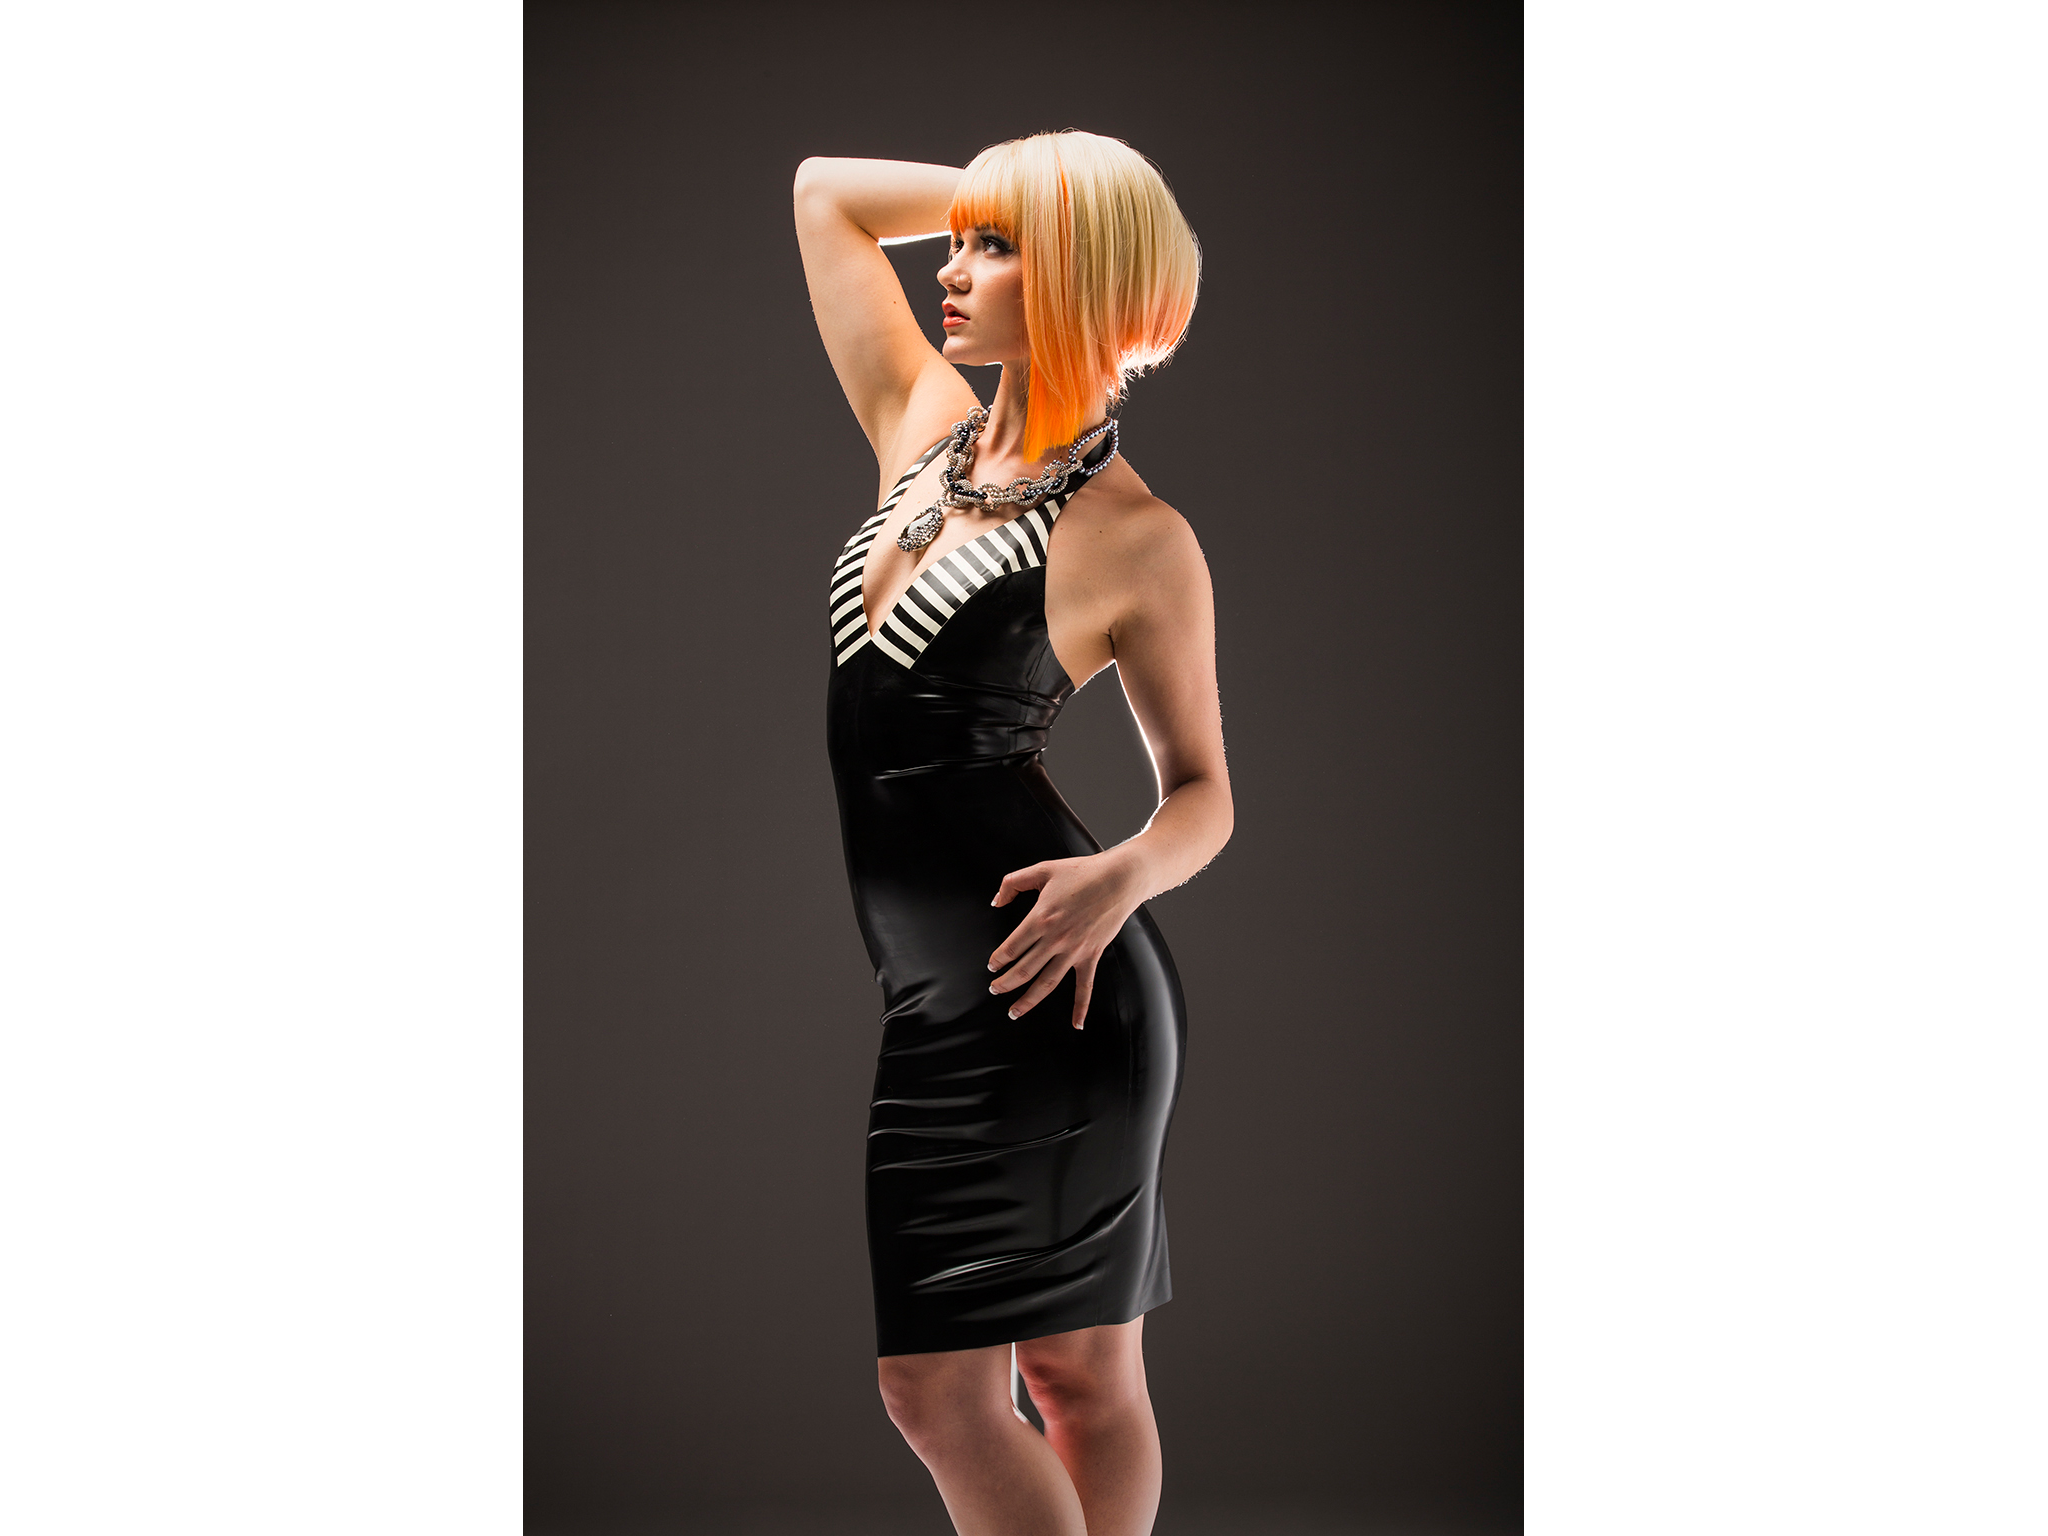 Fashion shot of blonde woman in black and white latex dress